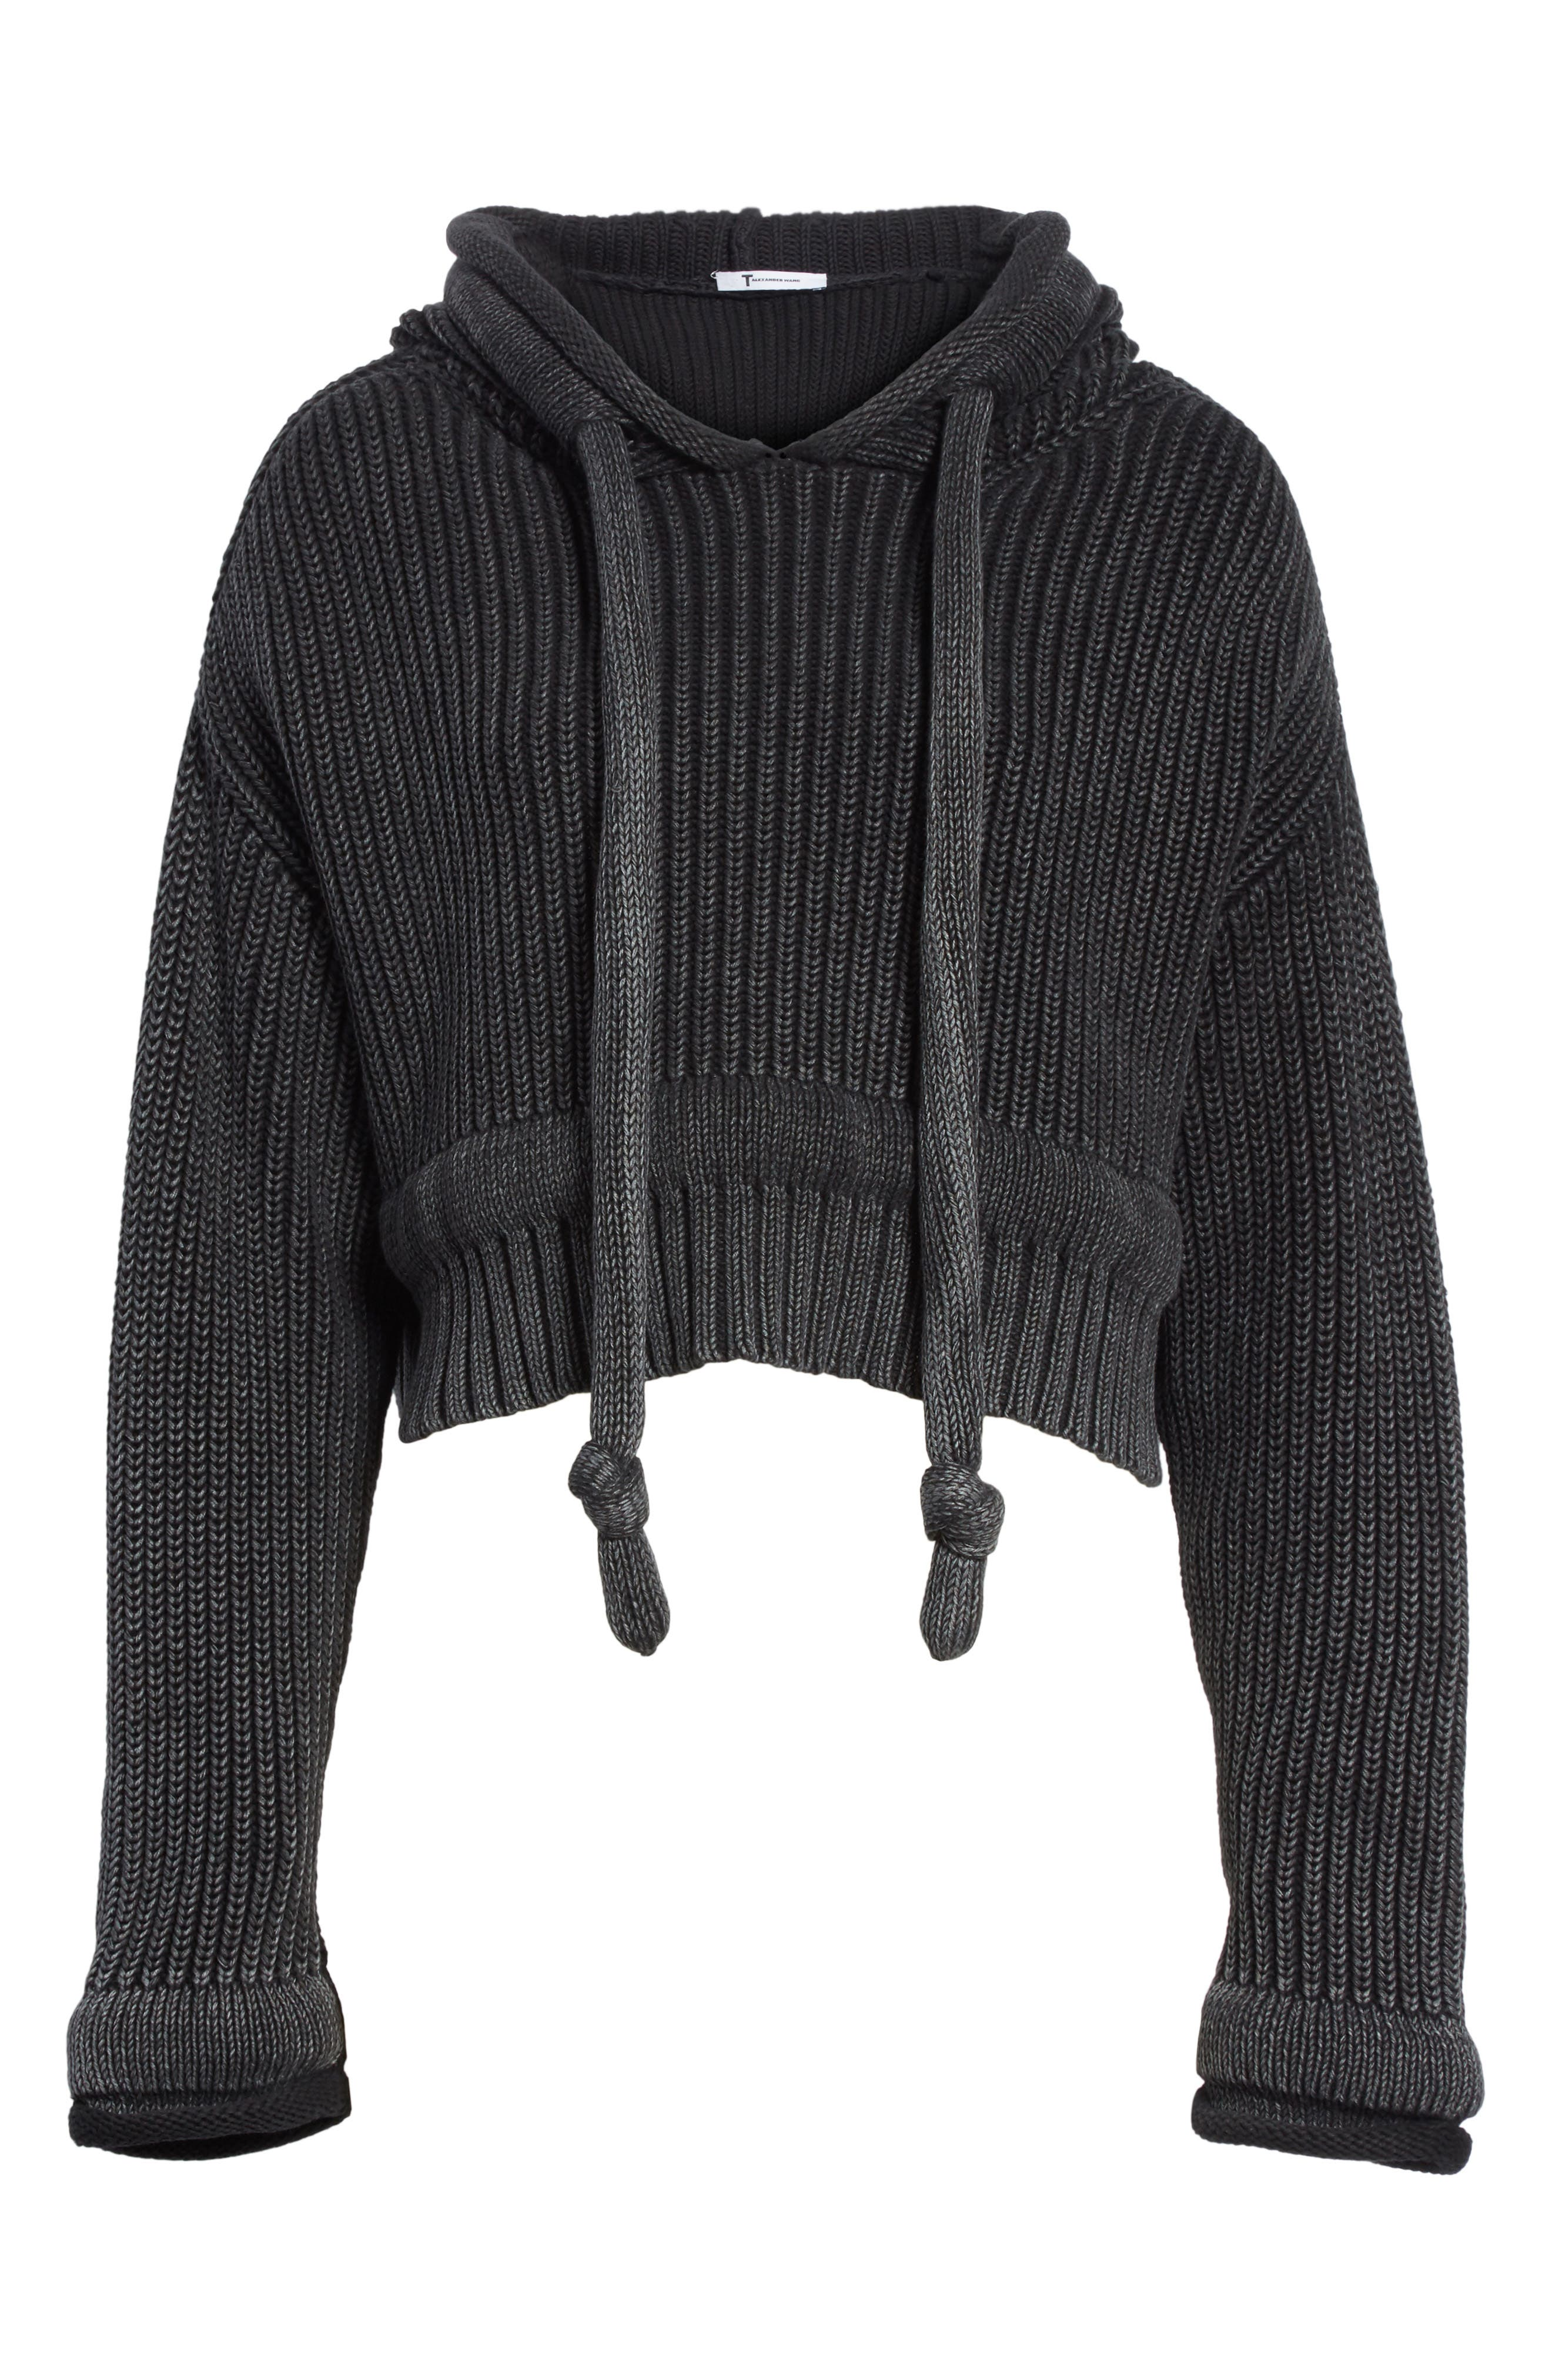 T by Alexander Wang Chunky Knit Hoodie,                             Alternate thumbnail 6, color,                             002